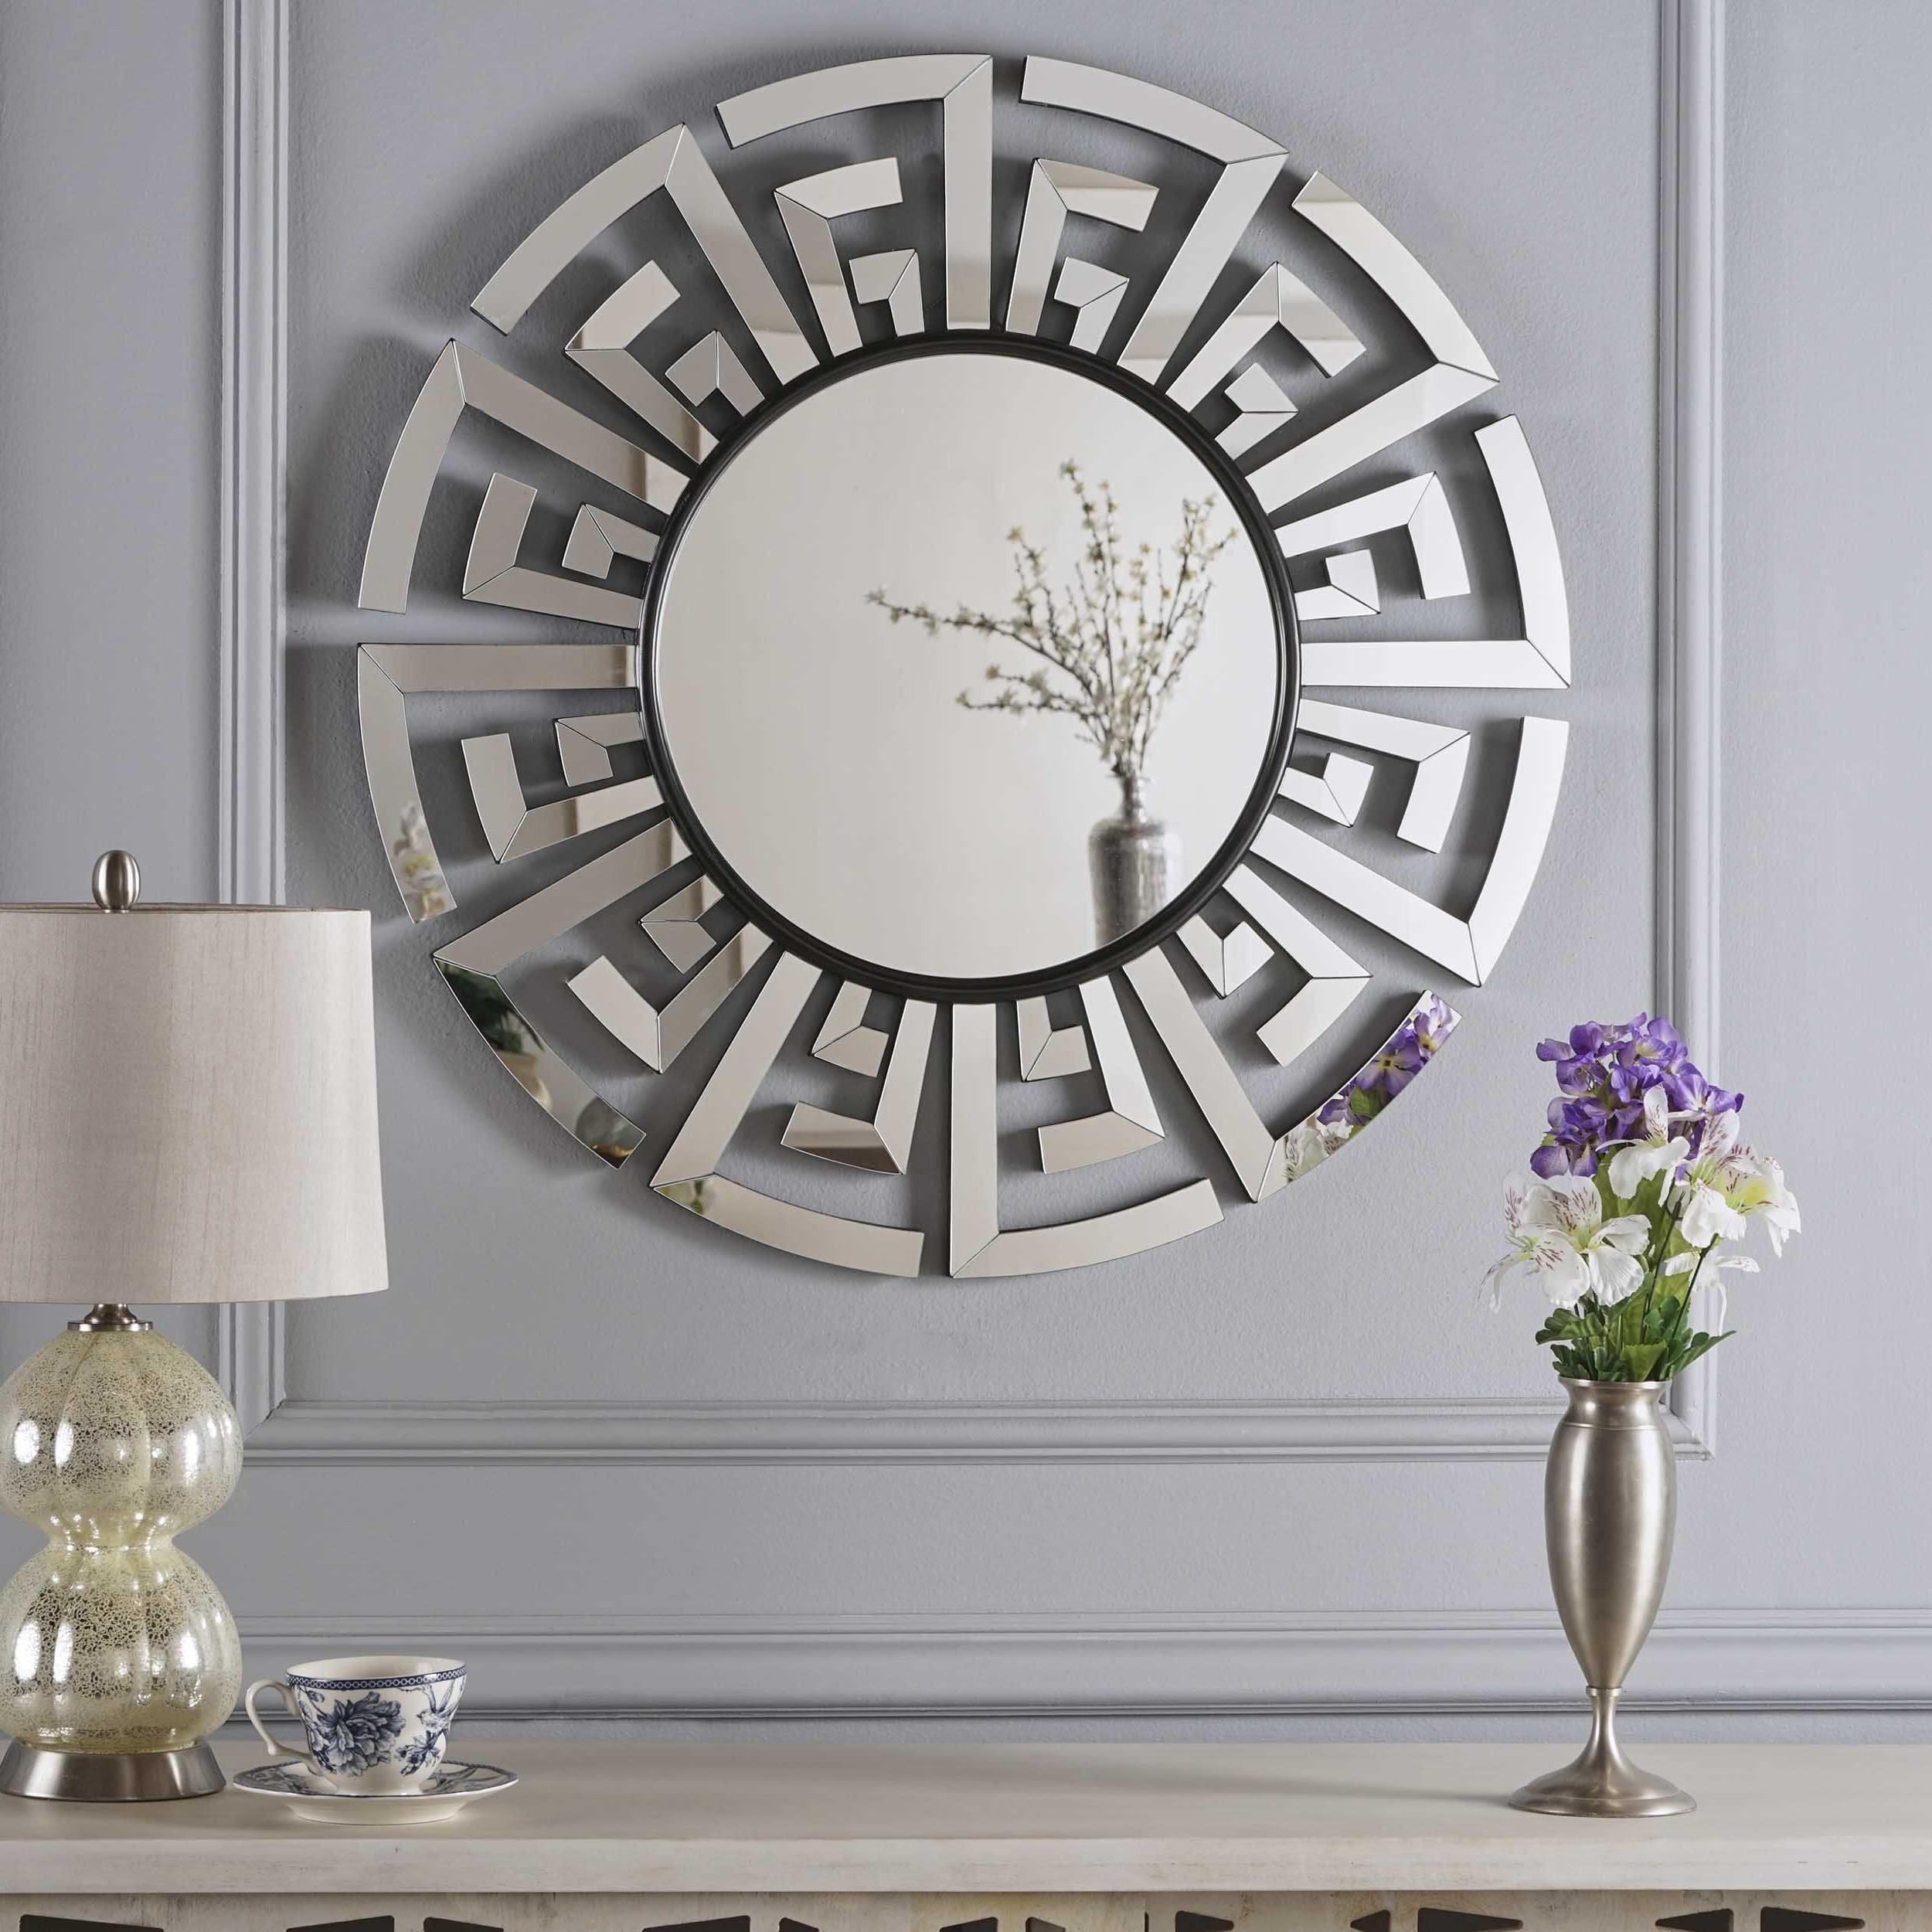 Far East Chinese Inspired Wall Mirror (View 12 of 20)